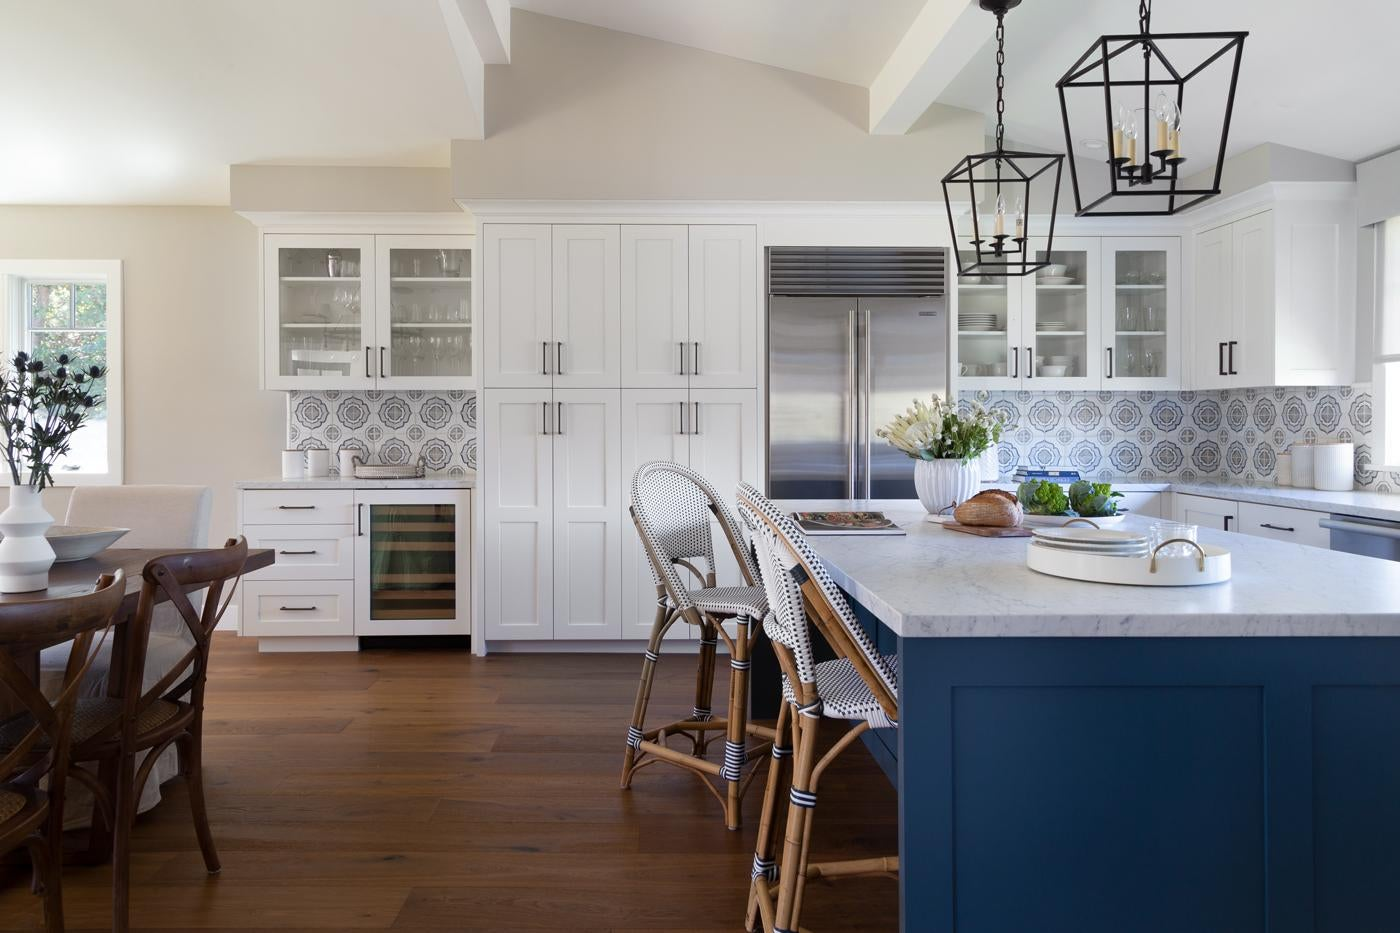 Classic White Kitchen with Blue Island and Lanterns